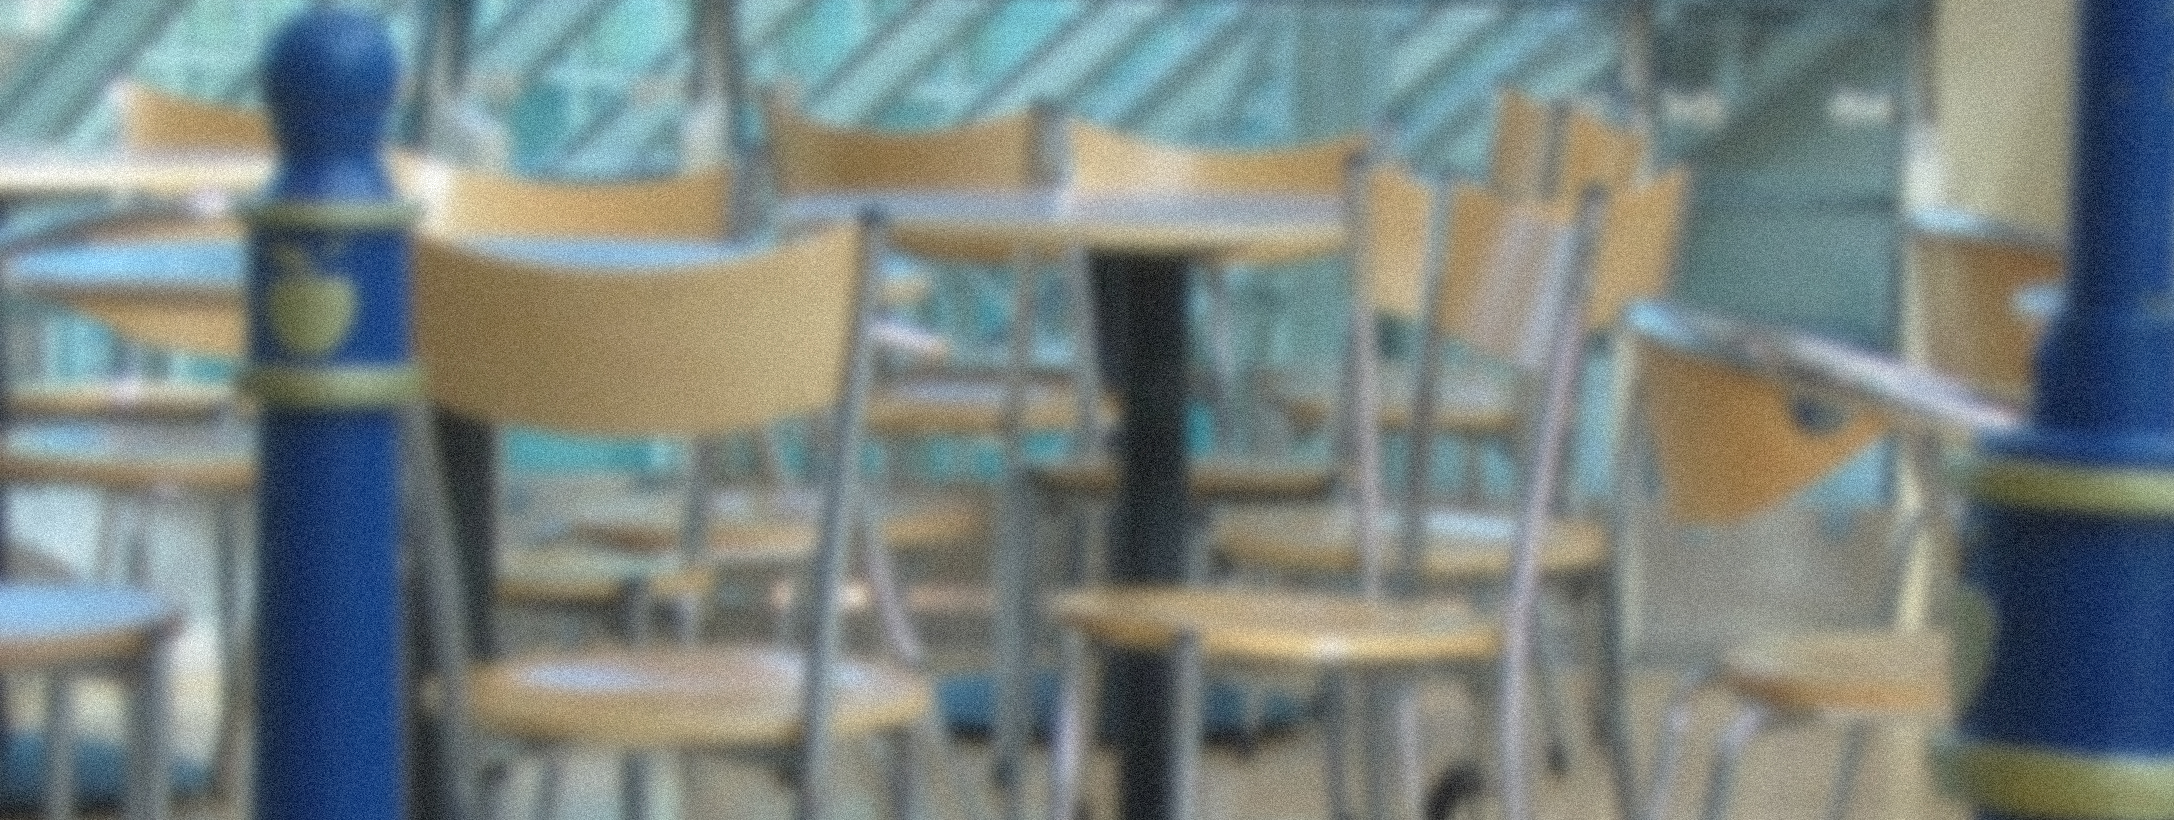 Photograph of an empty food court seating area